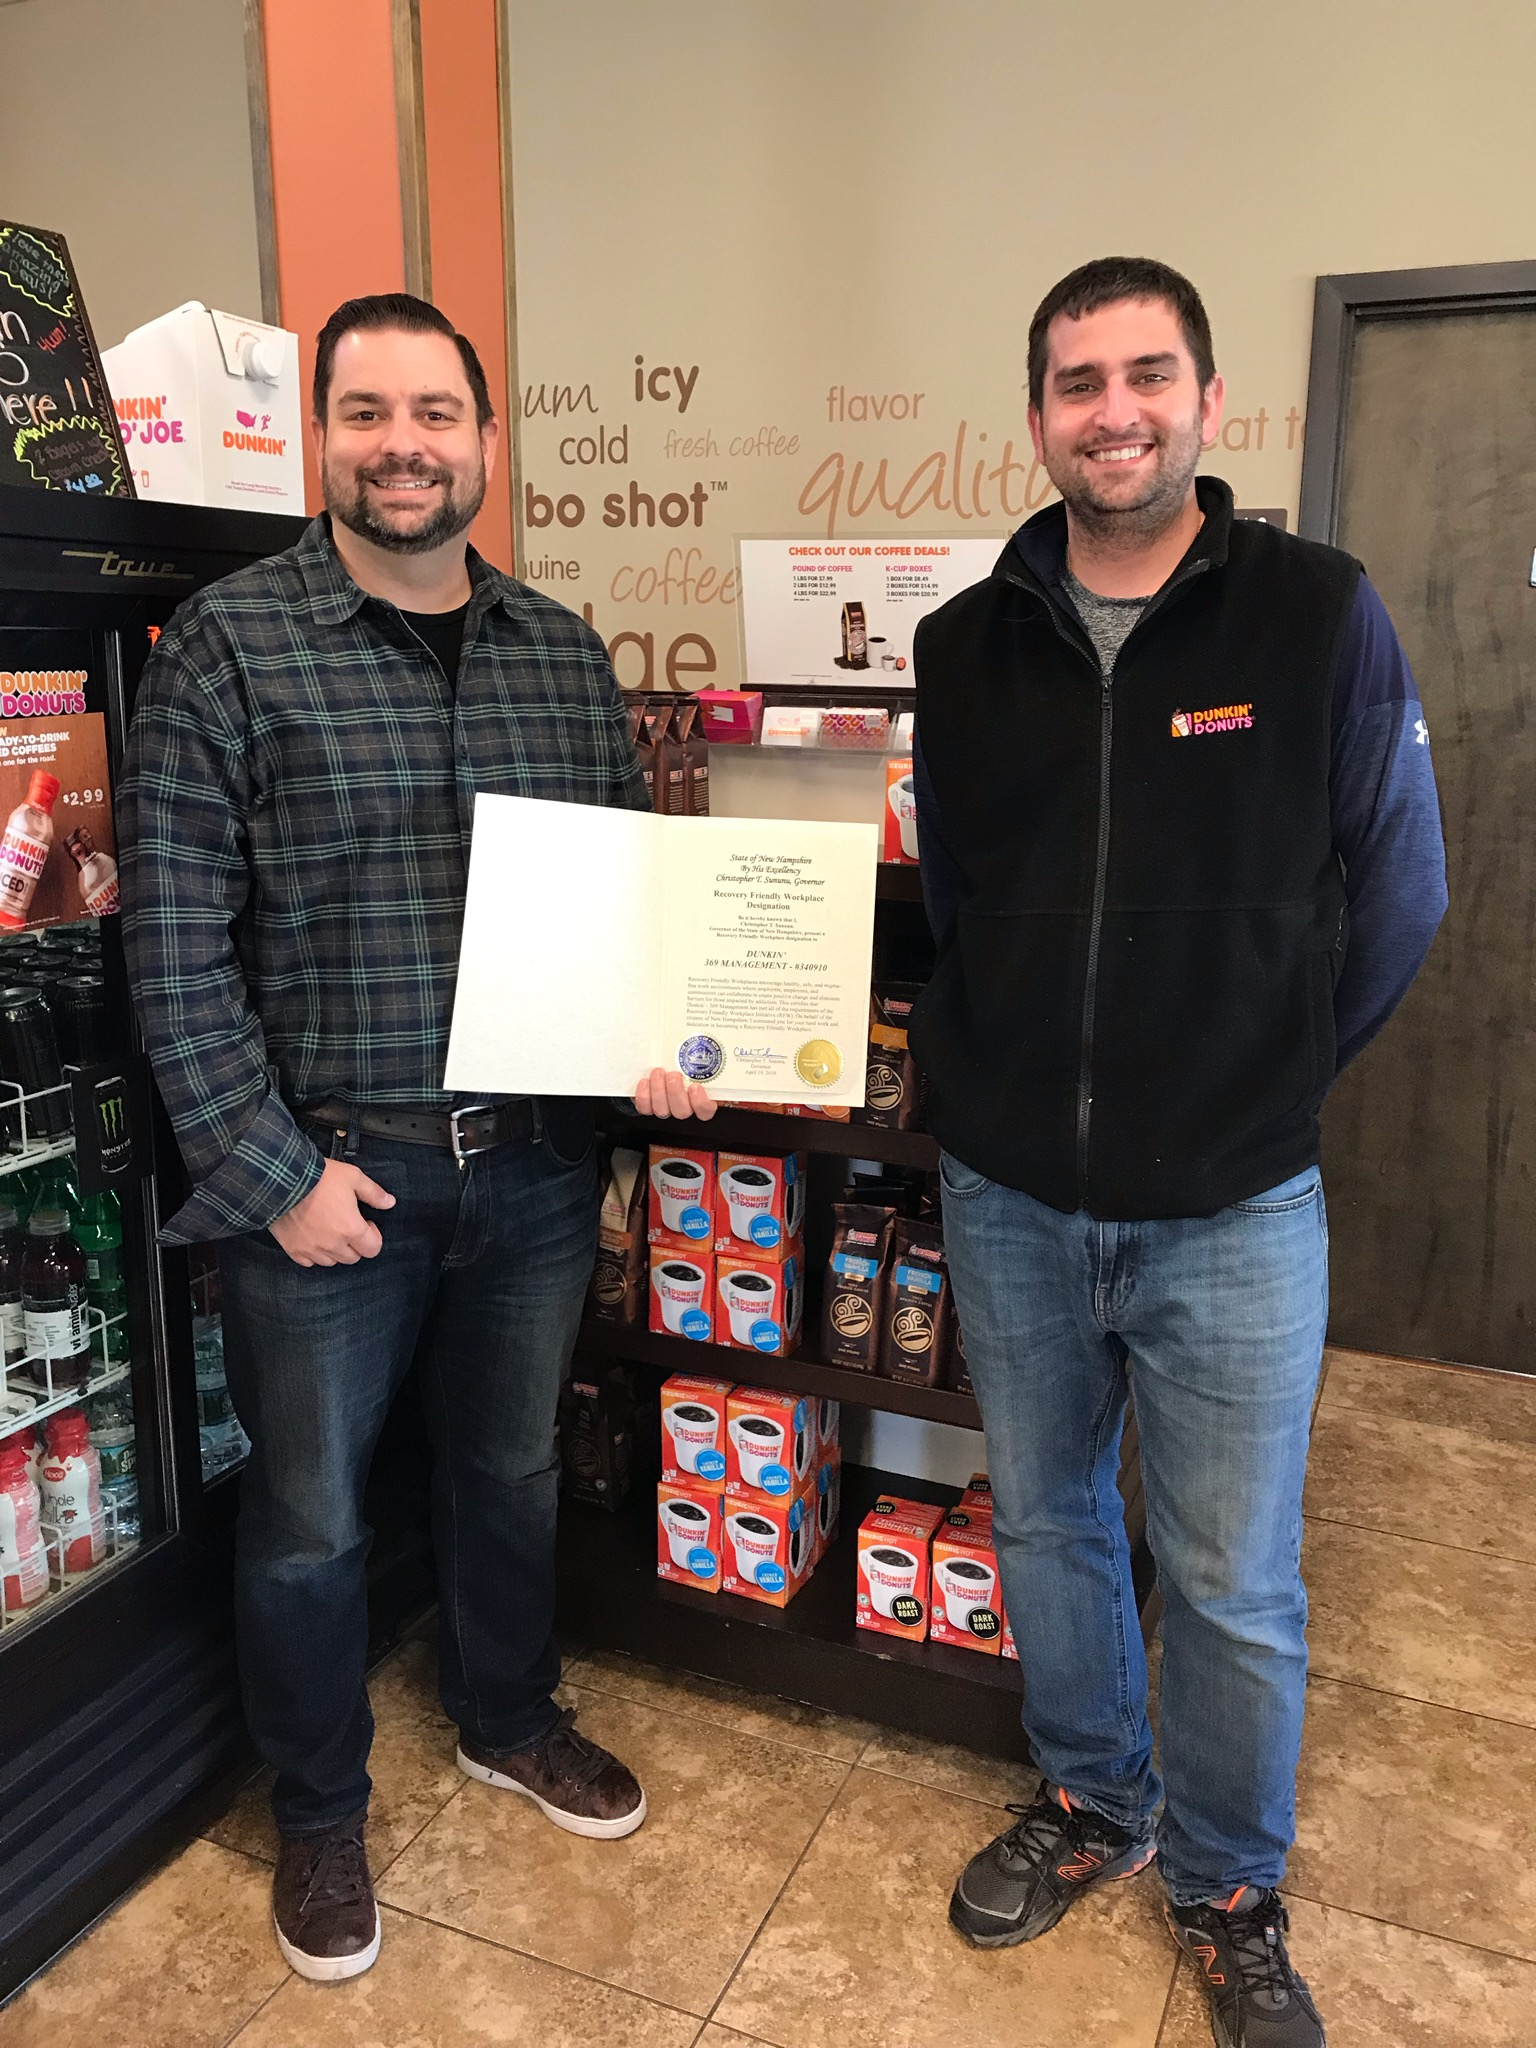 369 Management DBA Dunkin' receives RFW designation